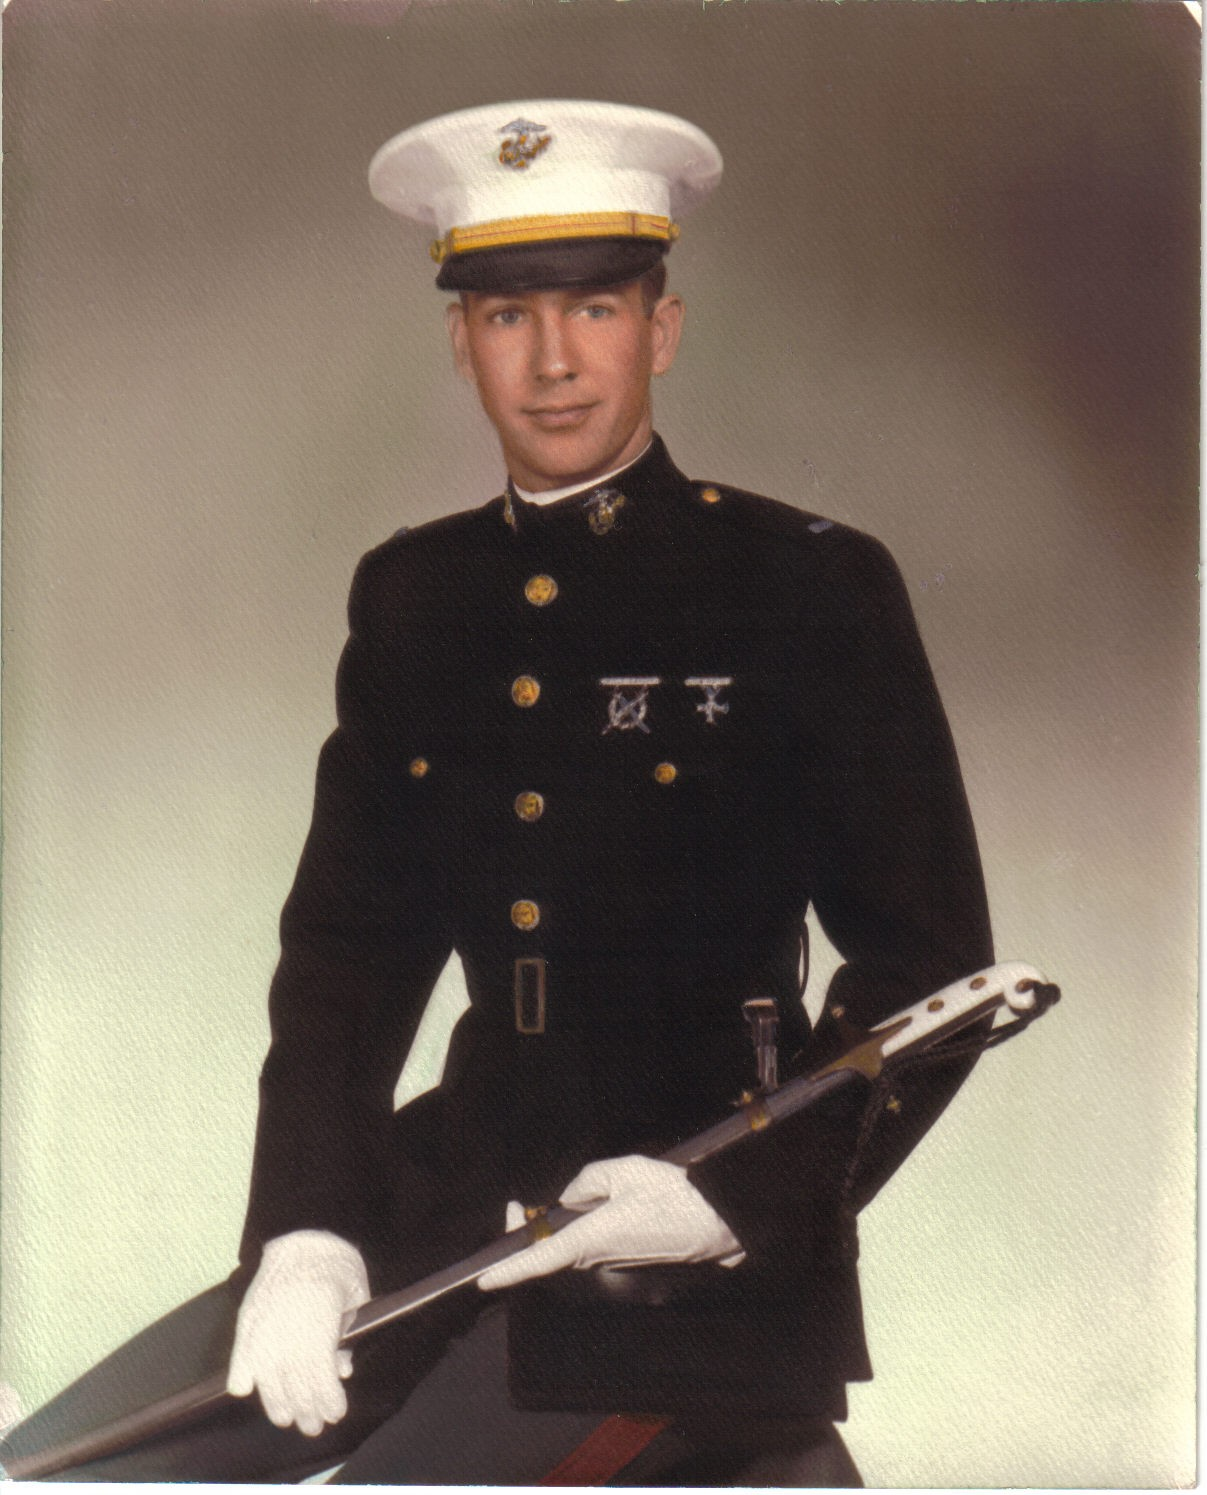 Usmc officer dress blue uniform regulations